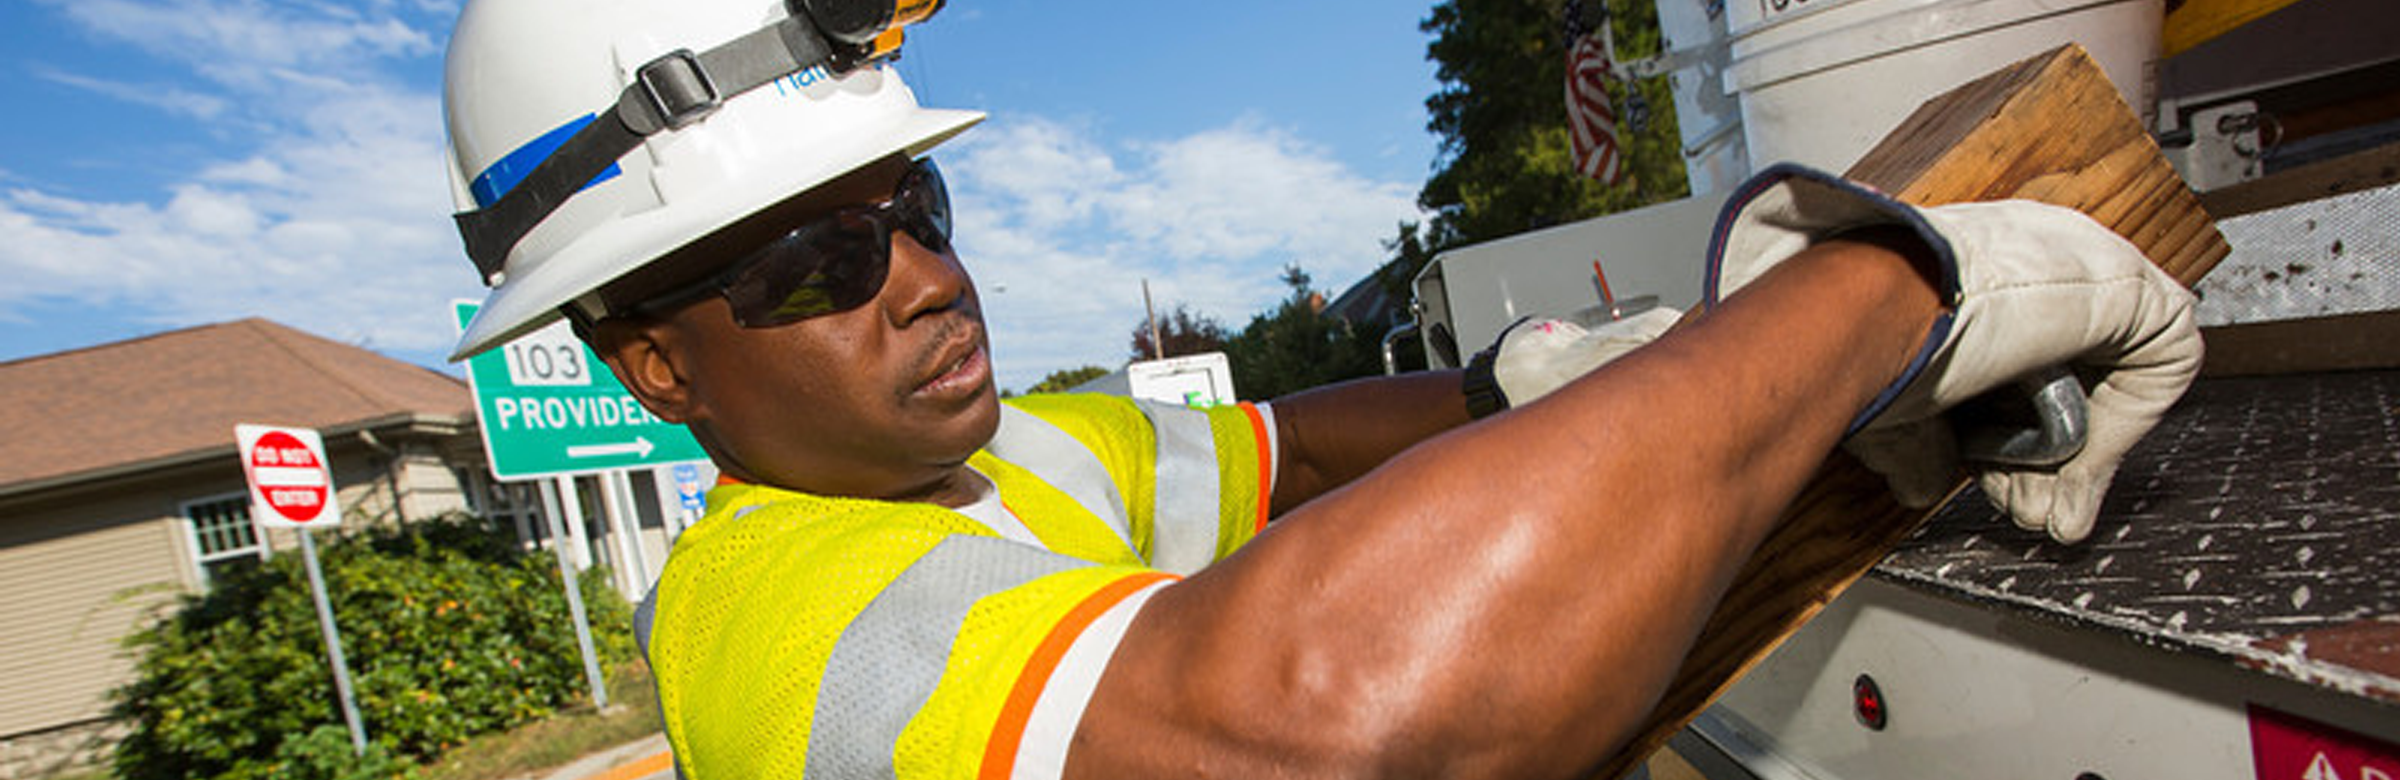 National Grid worker removing equipment from a truck- Our values